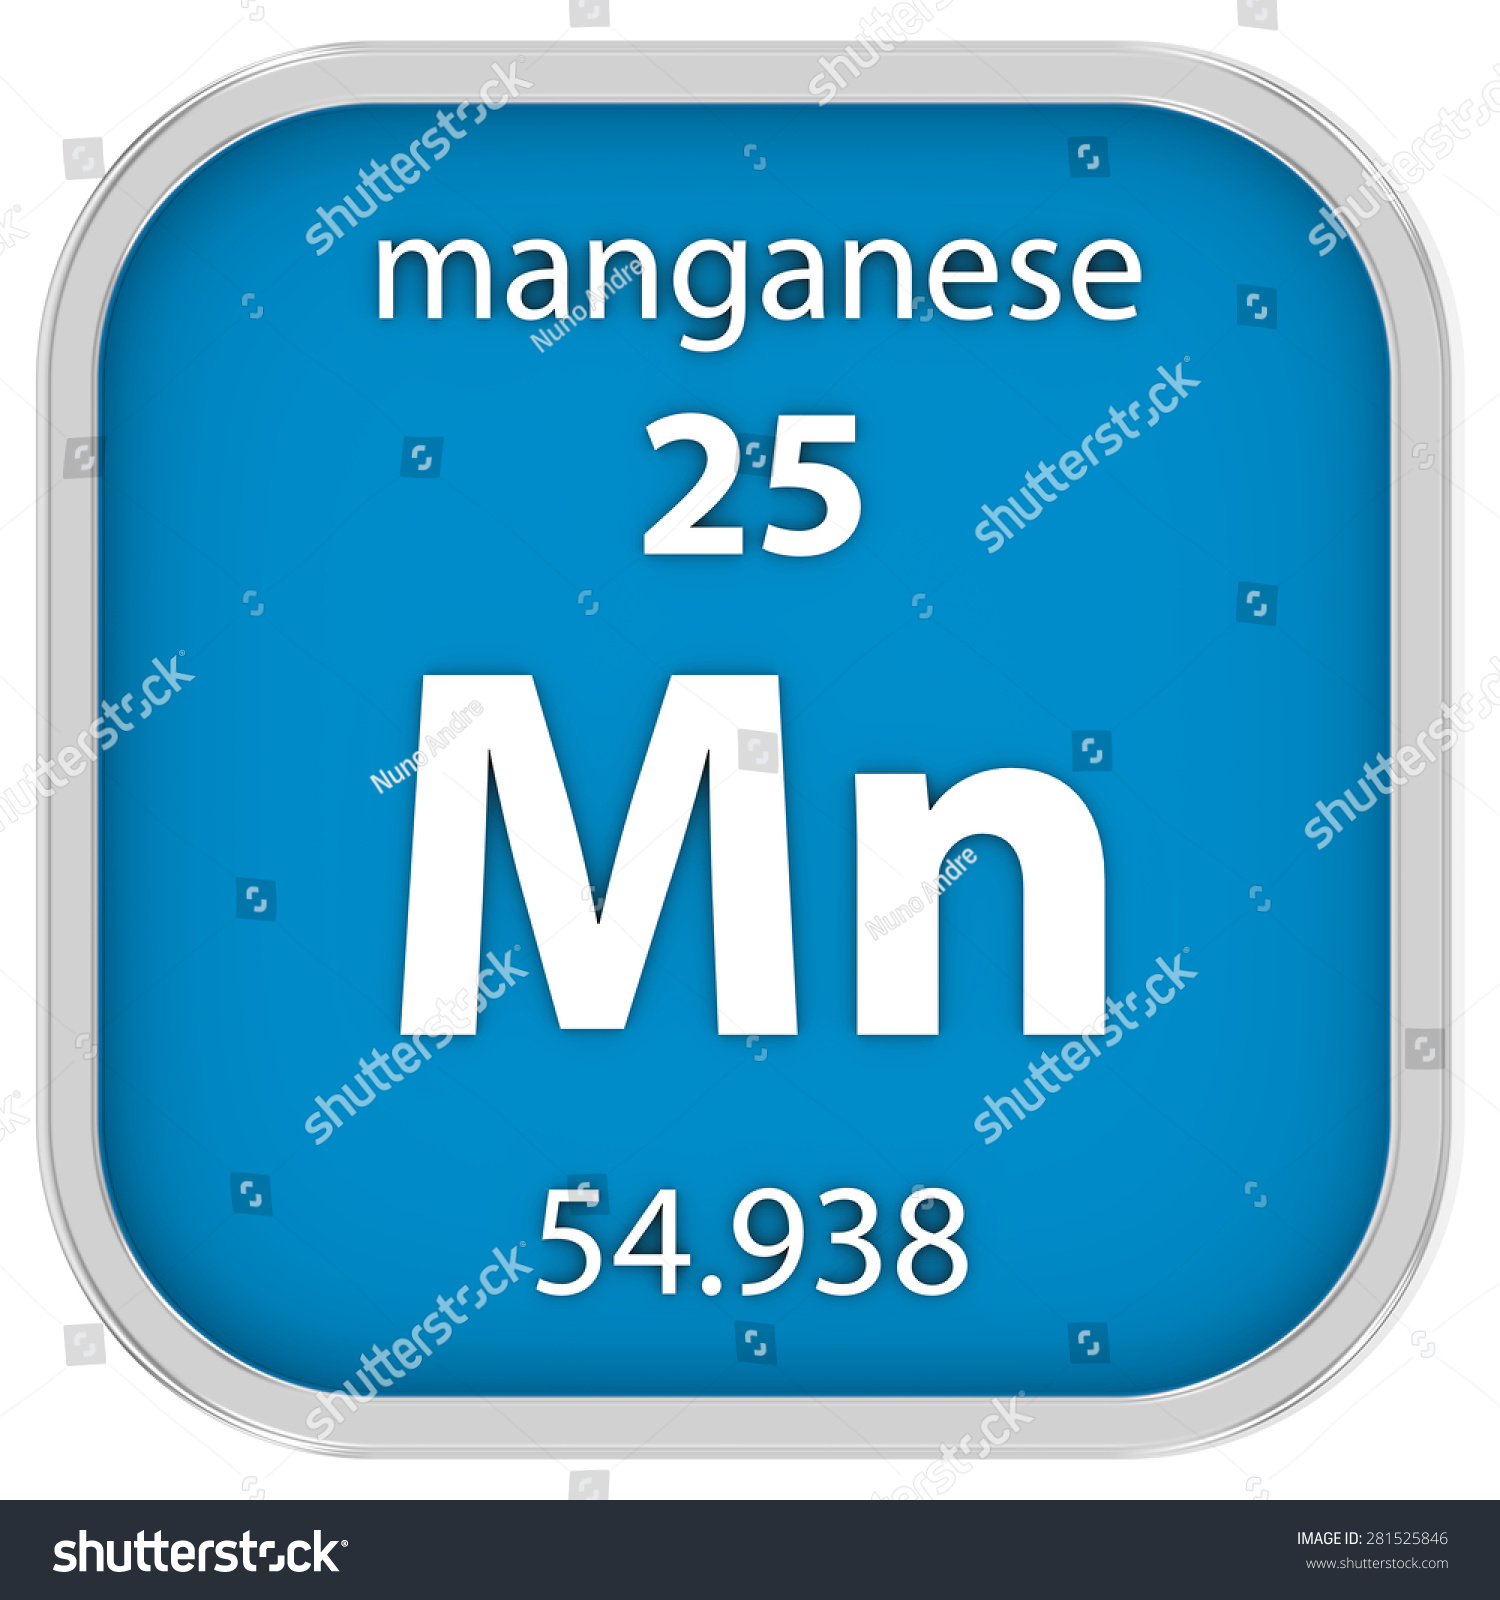 Manganese material on periodic table part stock illustration manganese material on the periodic table part of a series gamestrikefo Images